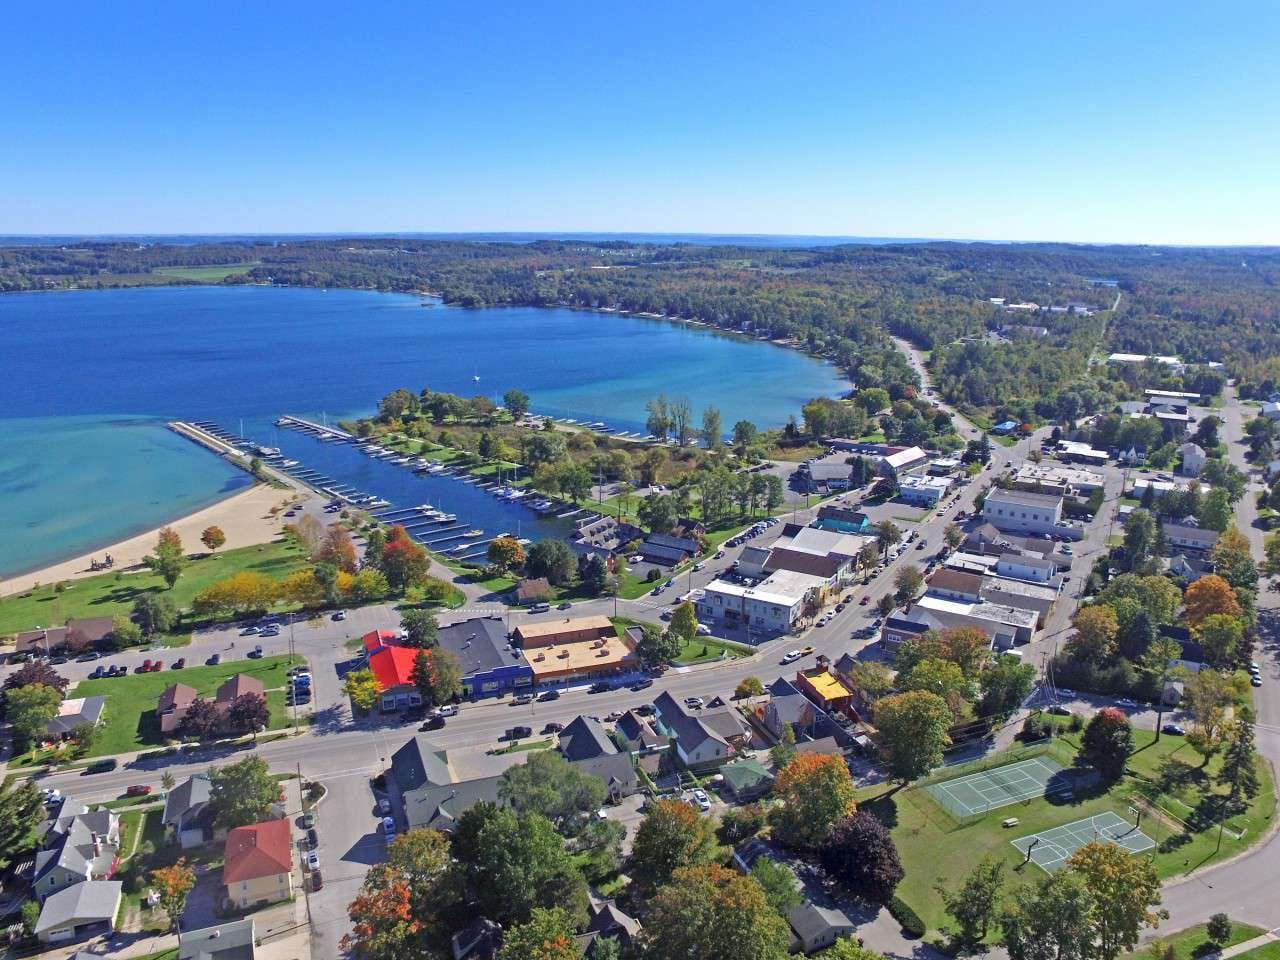 Arial view over Suttons Bay